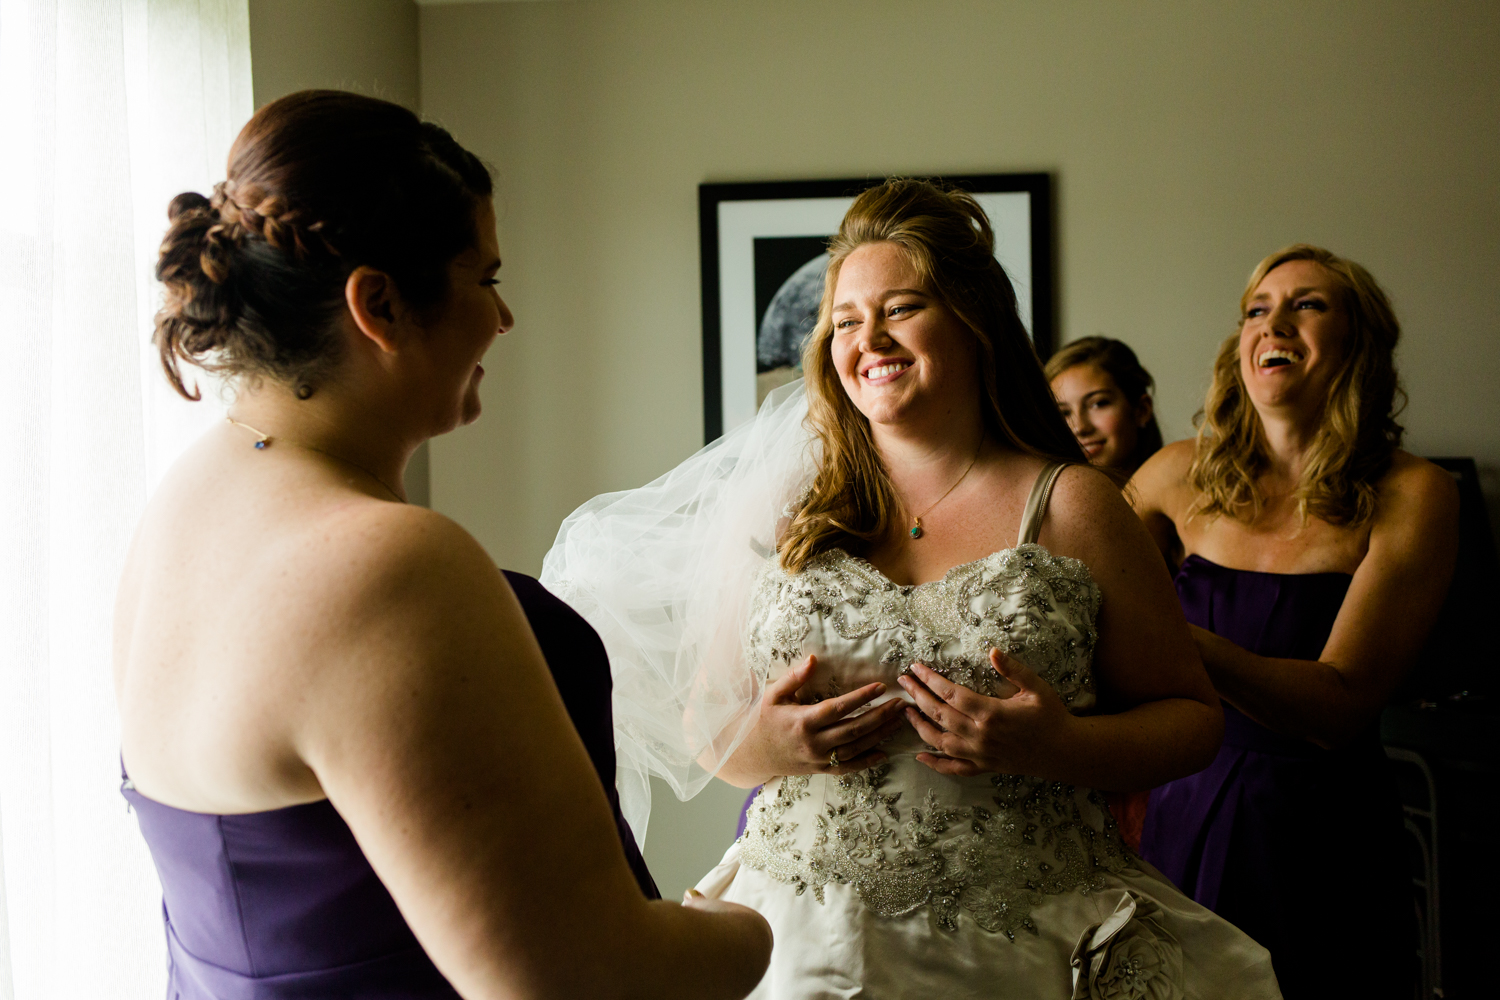 Bridesmaids help bride into her wedding gown. They are laughing and happy.